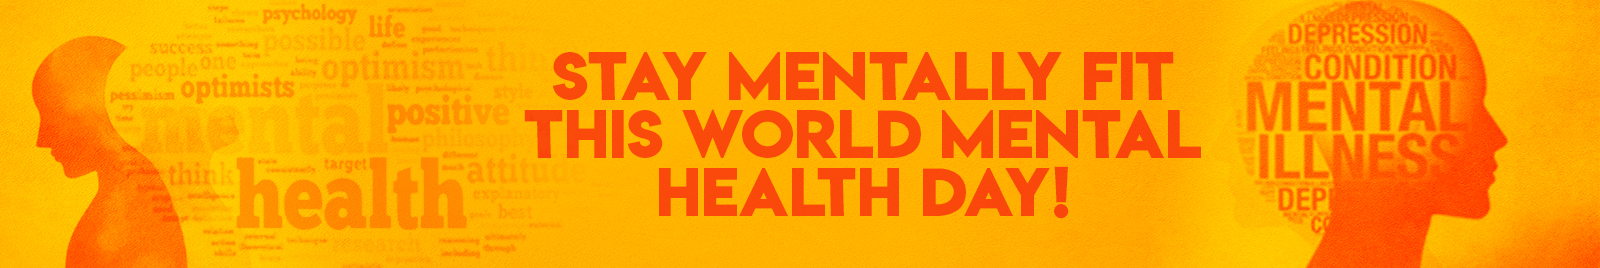 Stay mentally fit this World Mental Health Day!